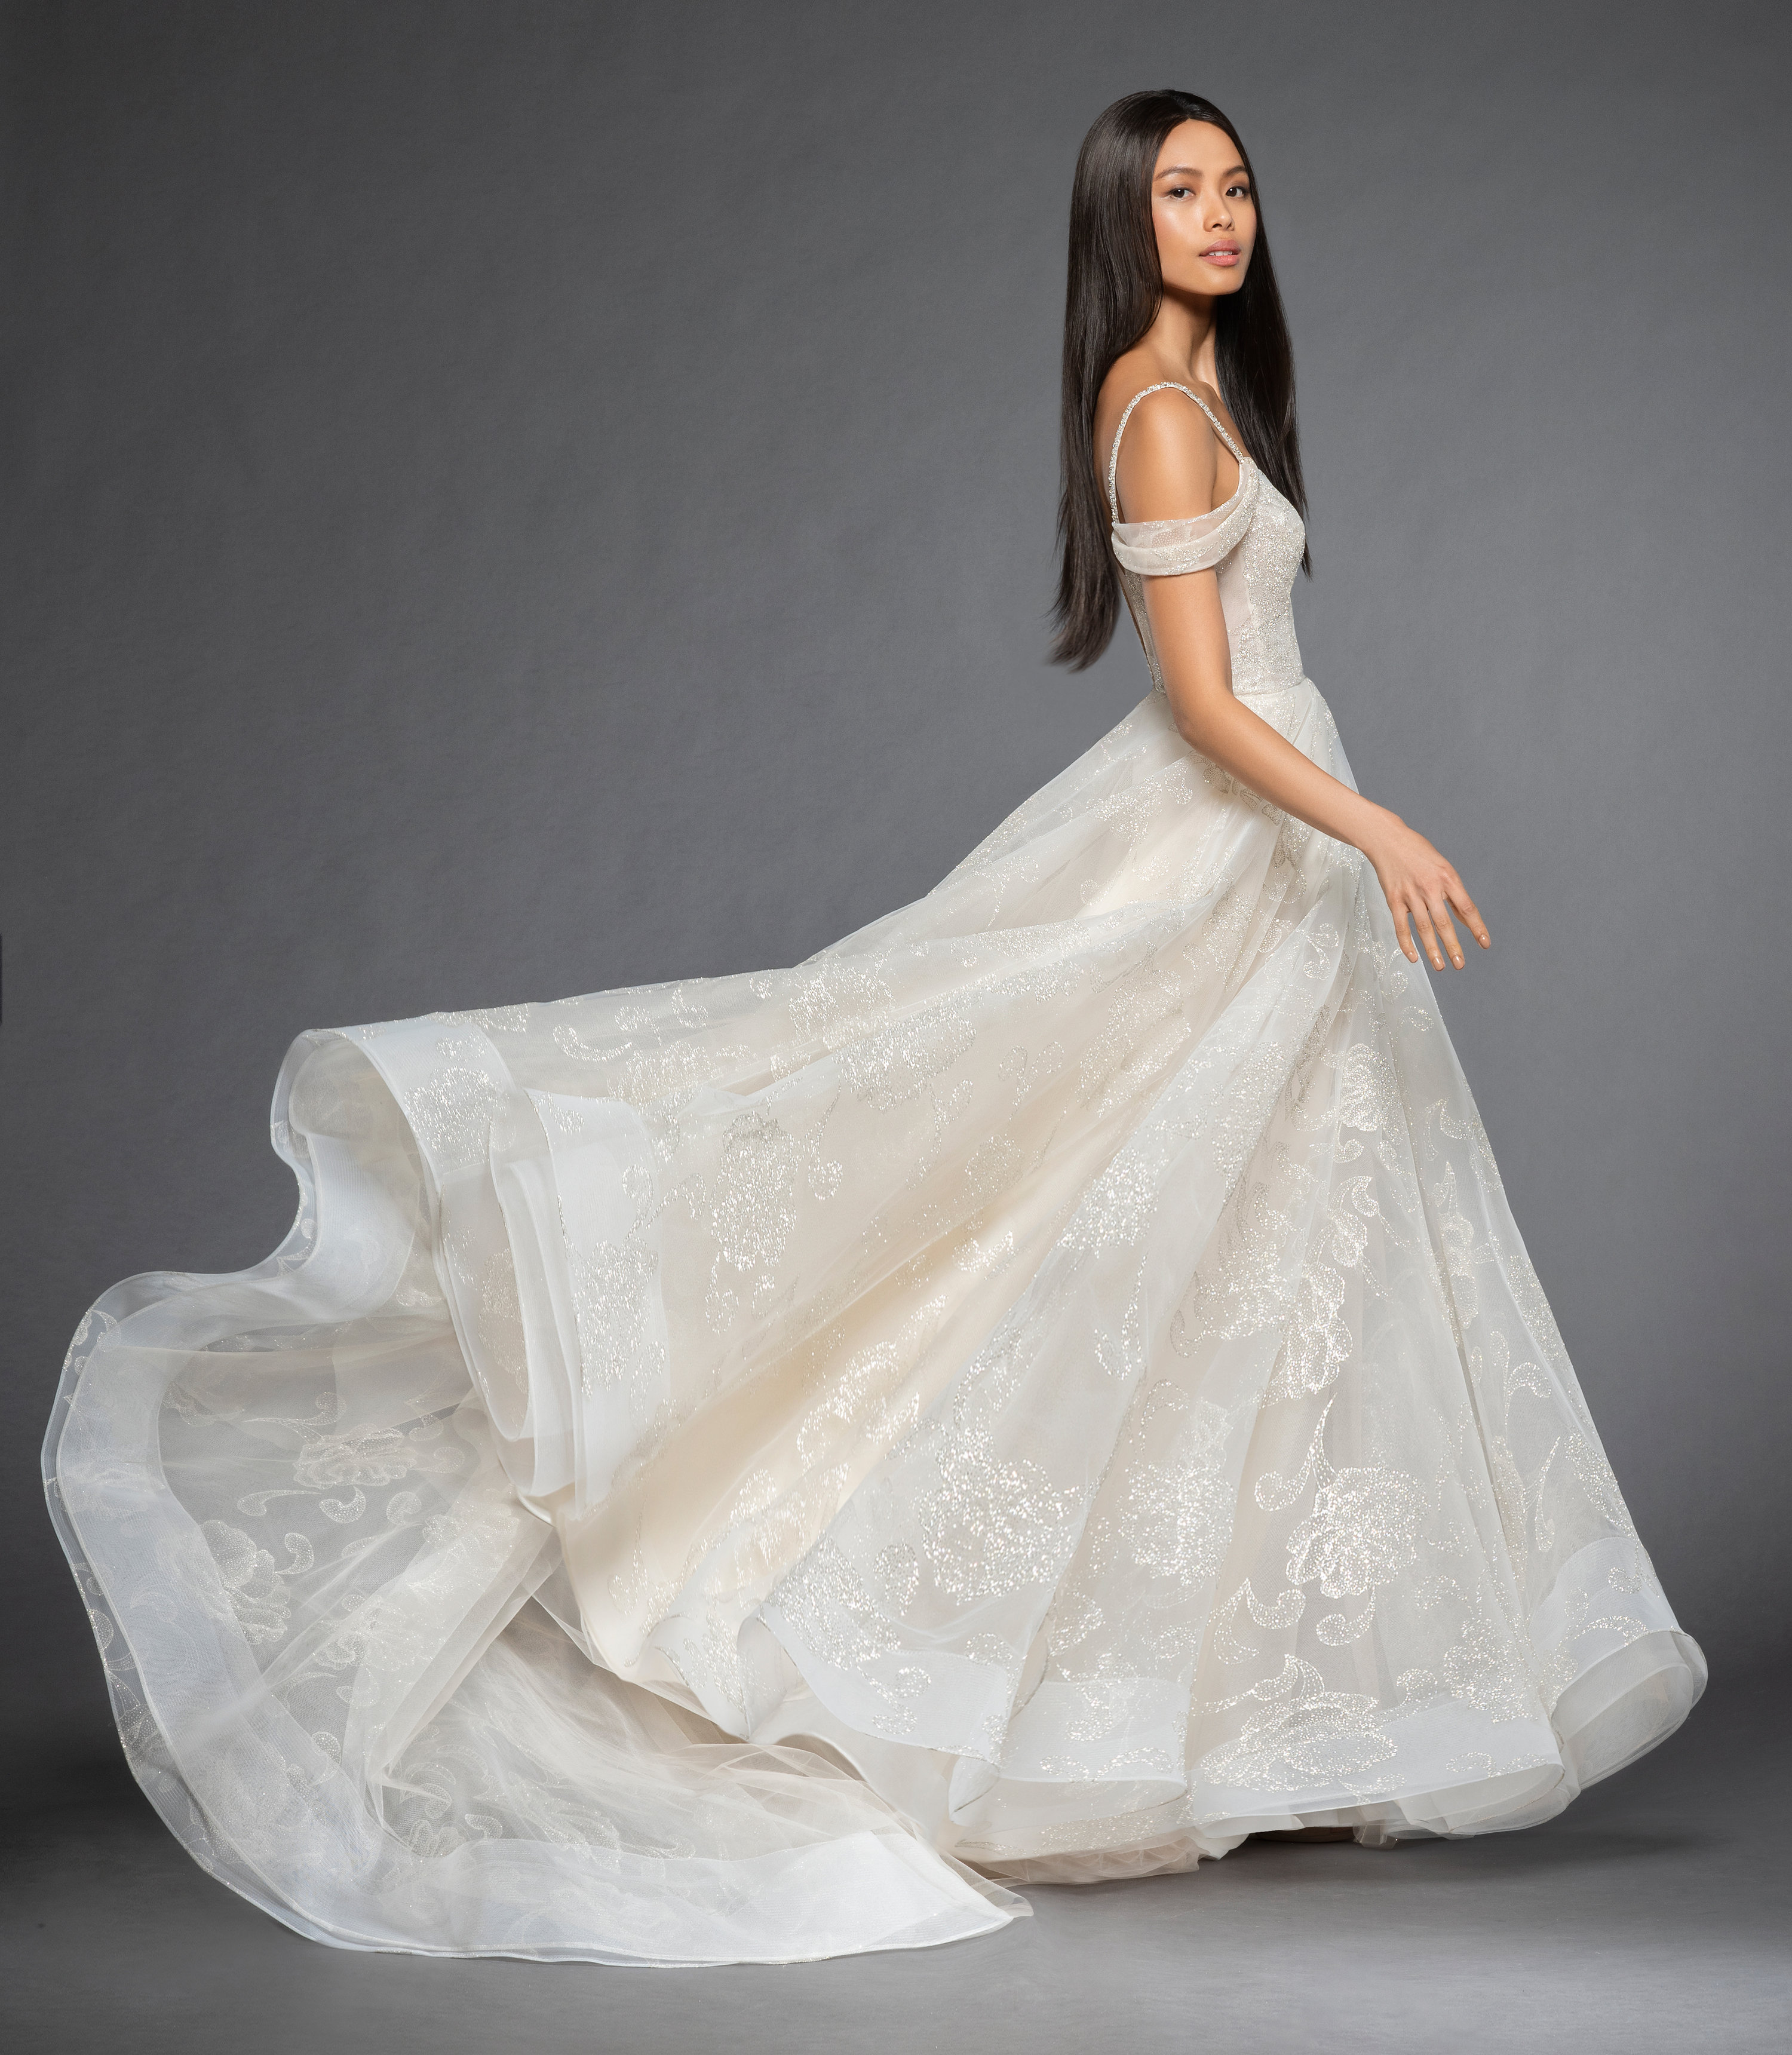 Wedding Dresess: Bridal Gowns And Wedding Dresses By JLM Couture